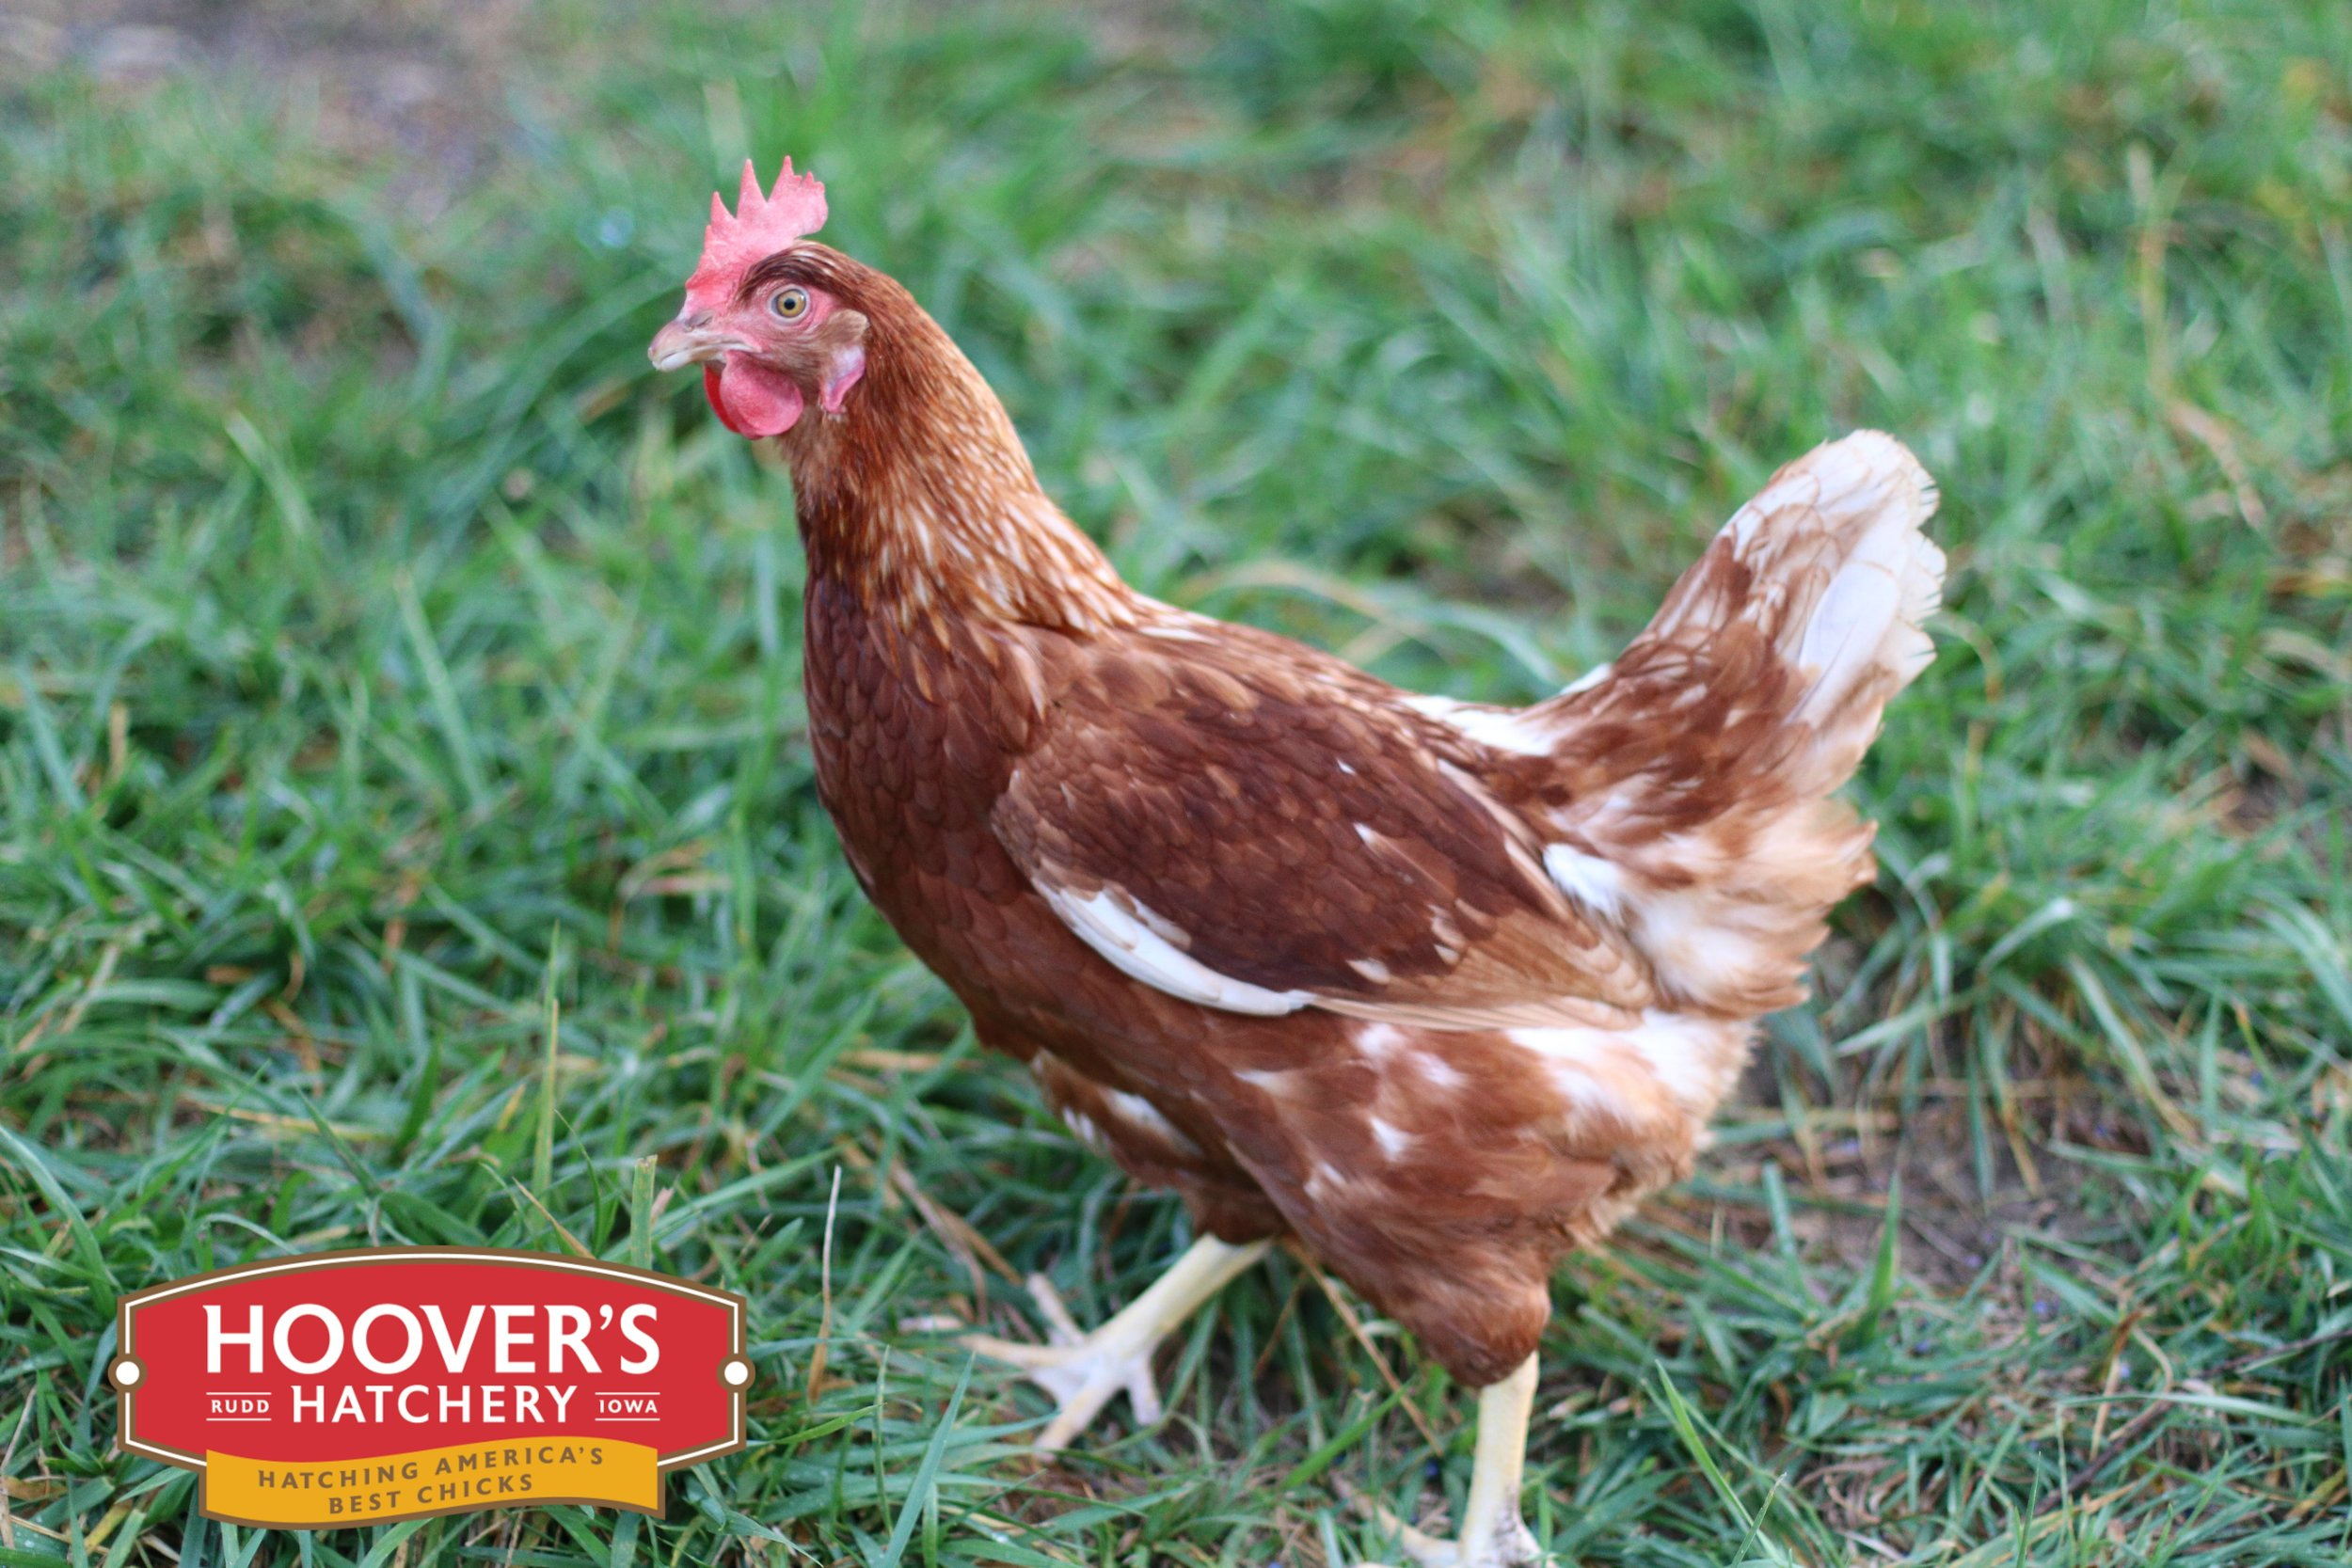 Cinnamon Queen - A beloved breed that takes the best qualities from its parents, a Rhode Island Red rooster and a Silver Laced Wyandotte hen. The Cinnamon Queens are wonderful egg layers and can take the cold hardiness of winter, ensuring that you will have eggs all year long. APPROX. 260 LARGE EGGS/YEAR | EGG COLOR: BROWN | MATURE WT: MALE 6 LBS. FEMALE 5 LBS.